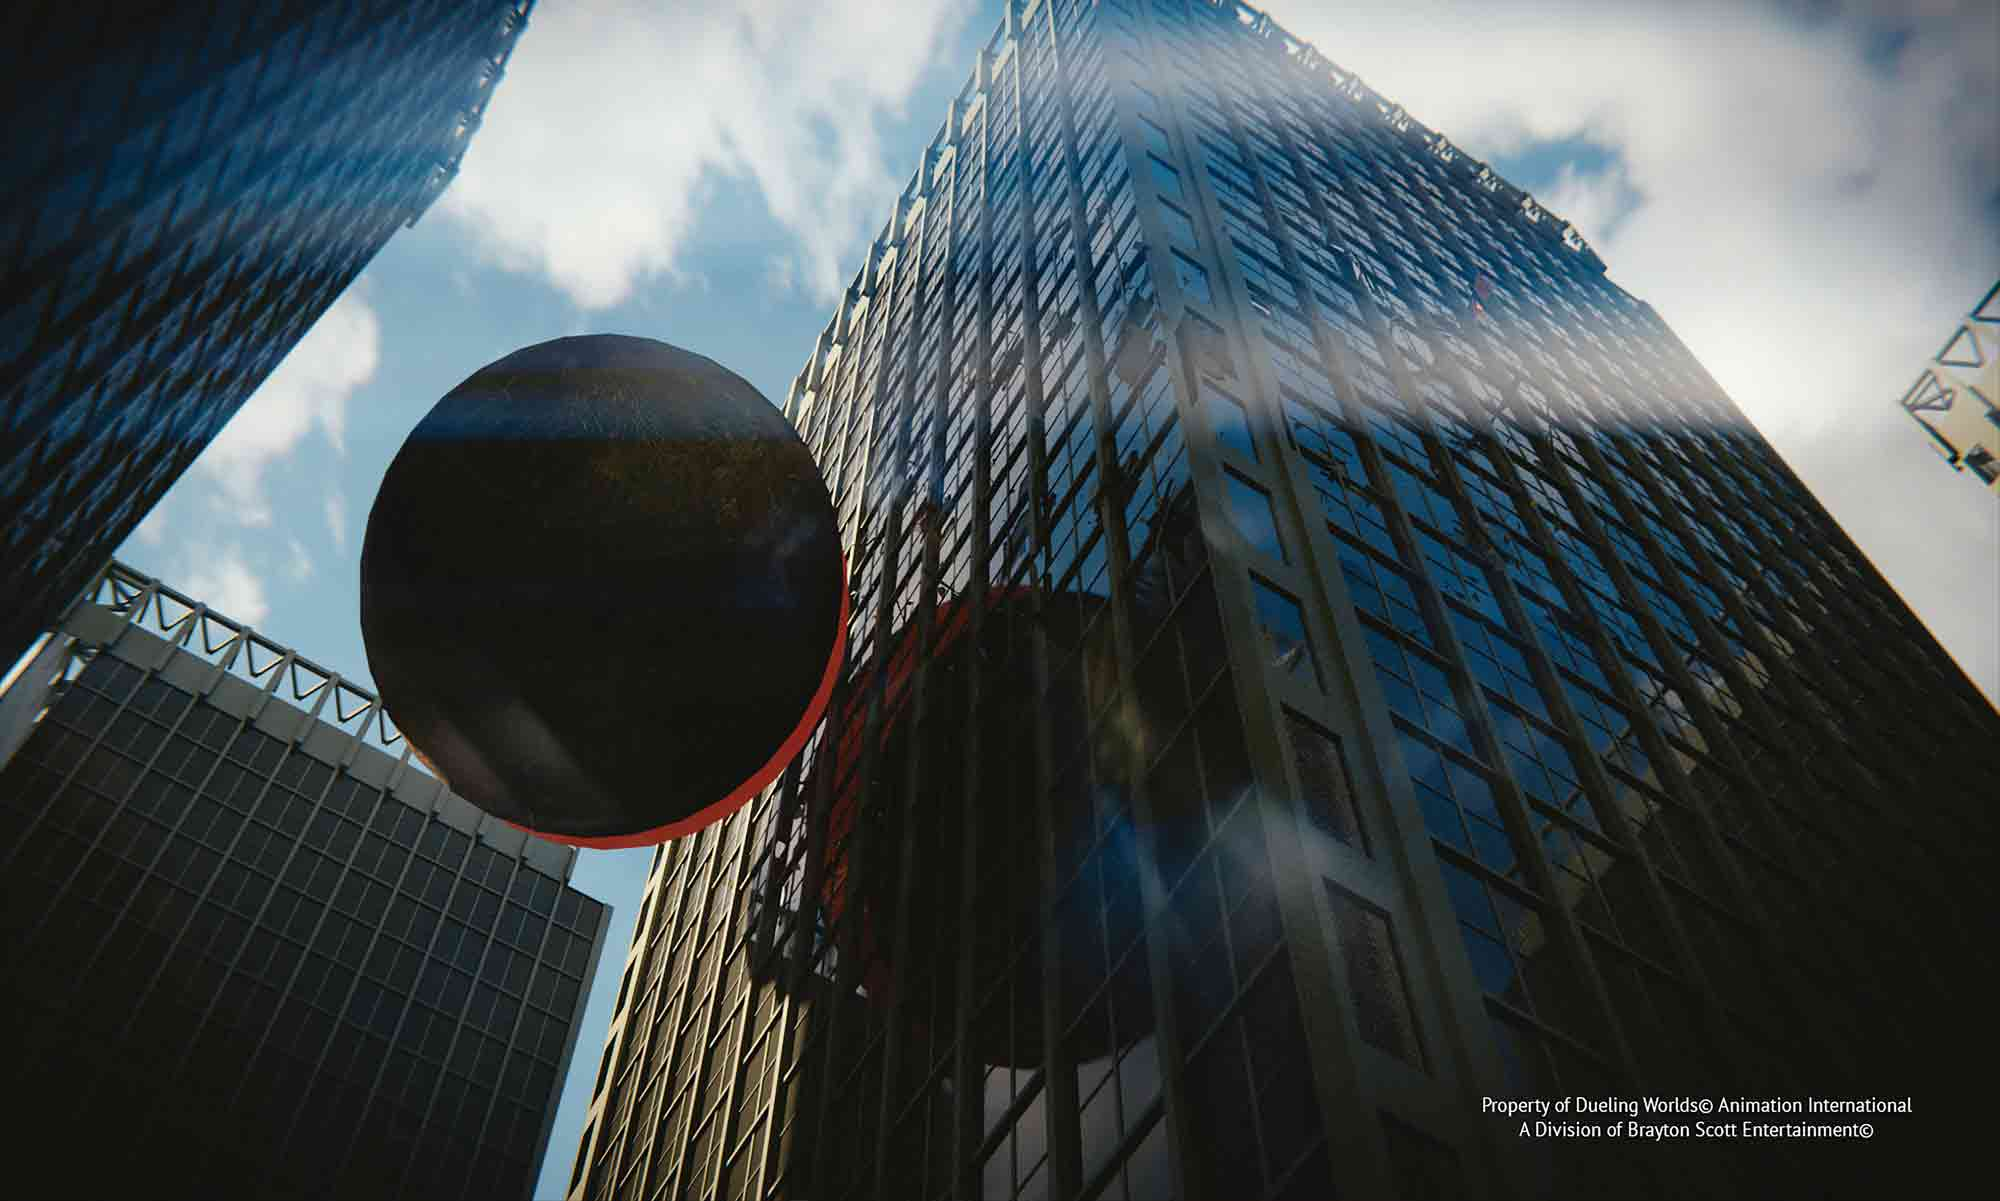 Image of Dueling Worlds© International Full Impact of Laxatrone Meteor into Skyscraper